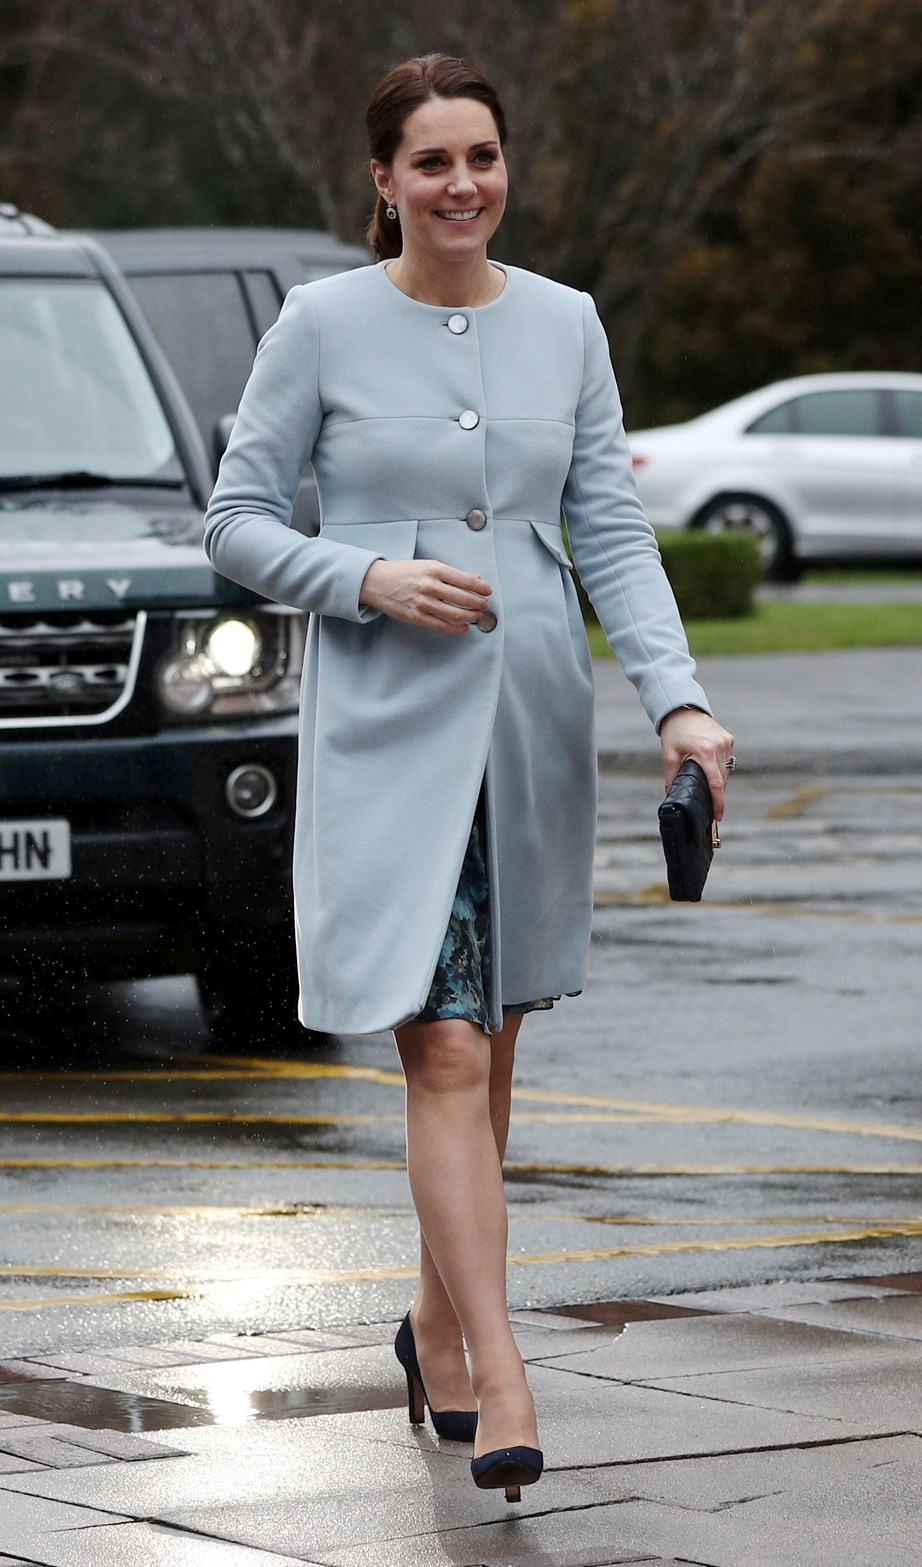 Catherine reusing a powder-blue maternity coat by Seraphine she wore when pregnant with Princess Charlotte.